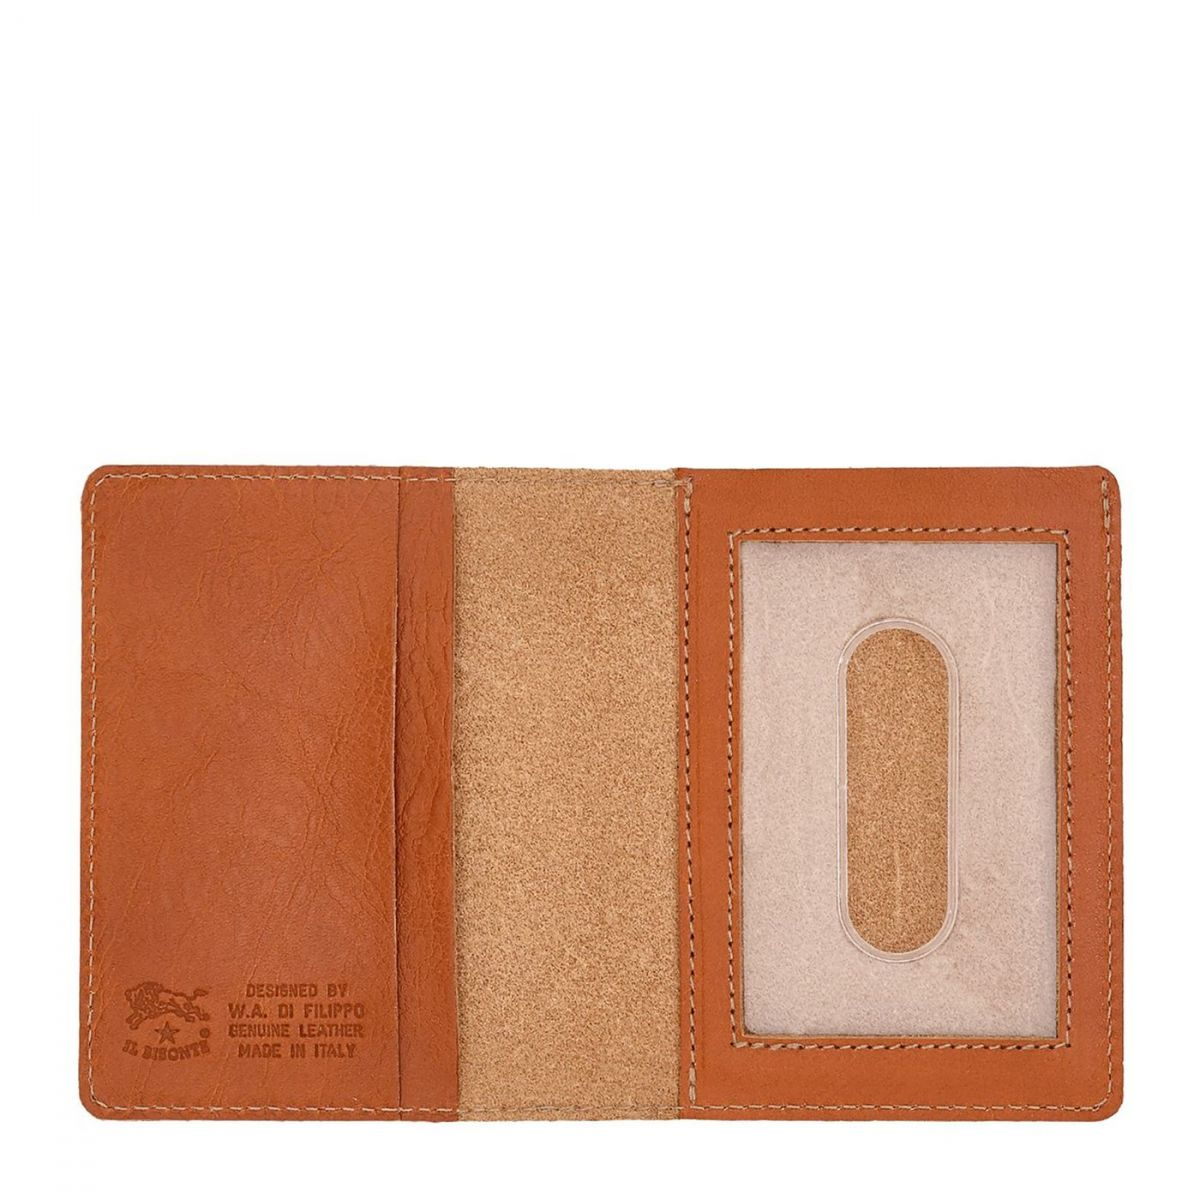 Card Case  in Cowhide Double Leather SCC003 color Caramel | Details